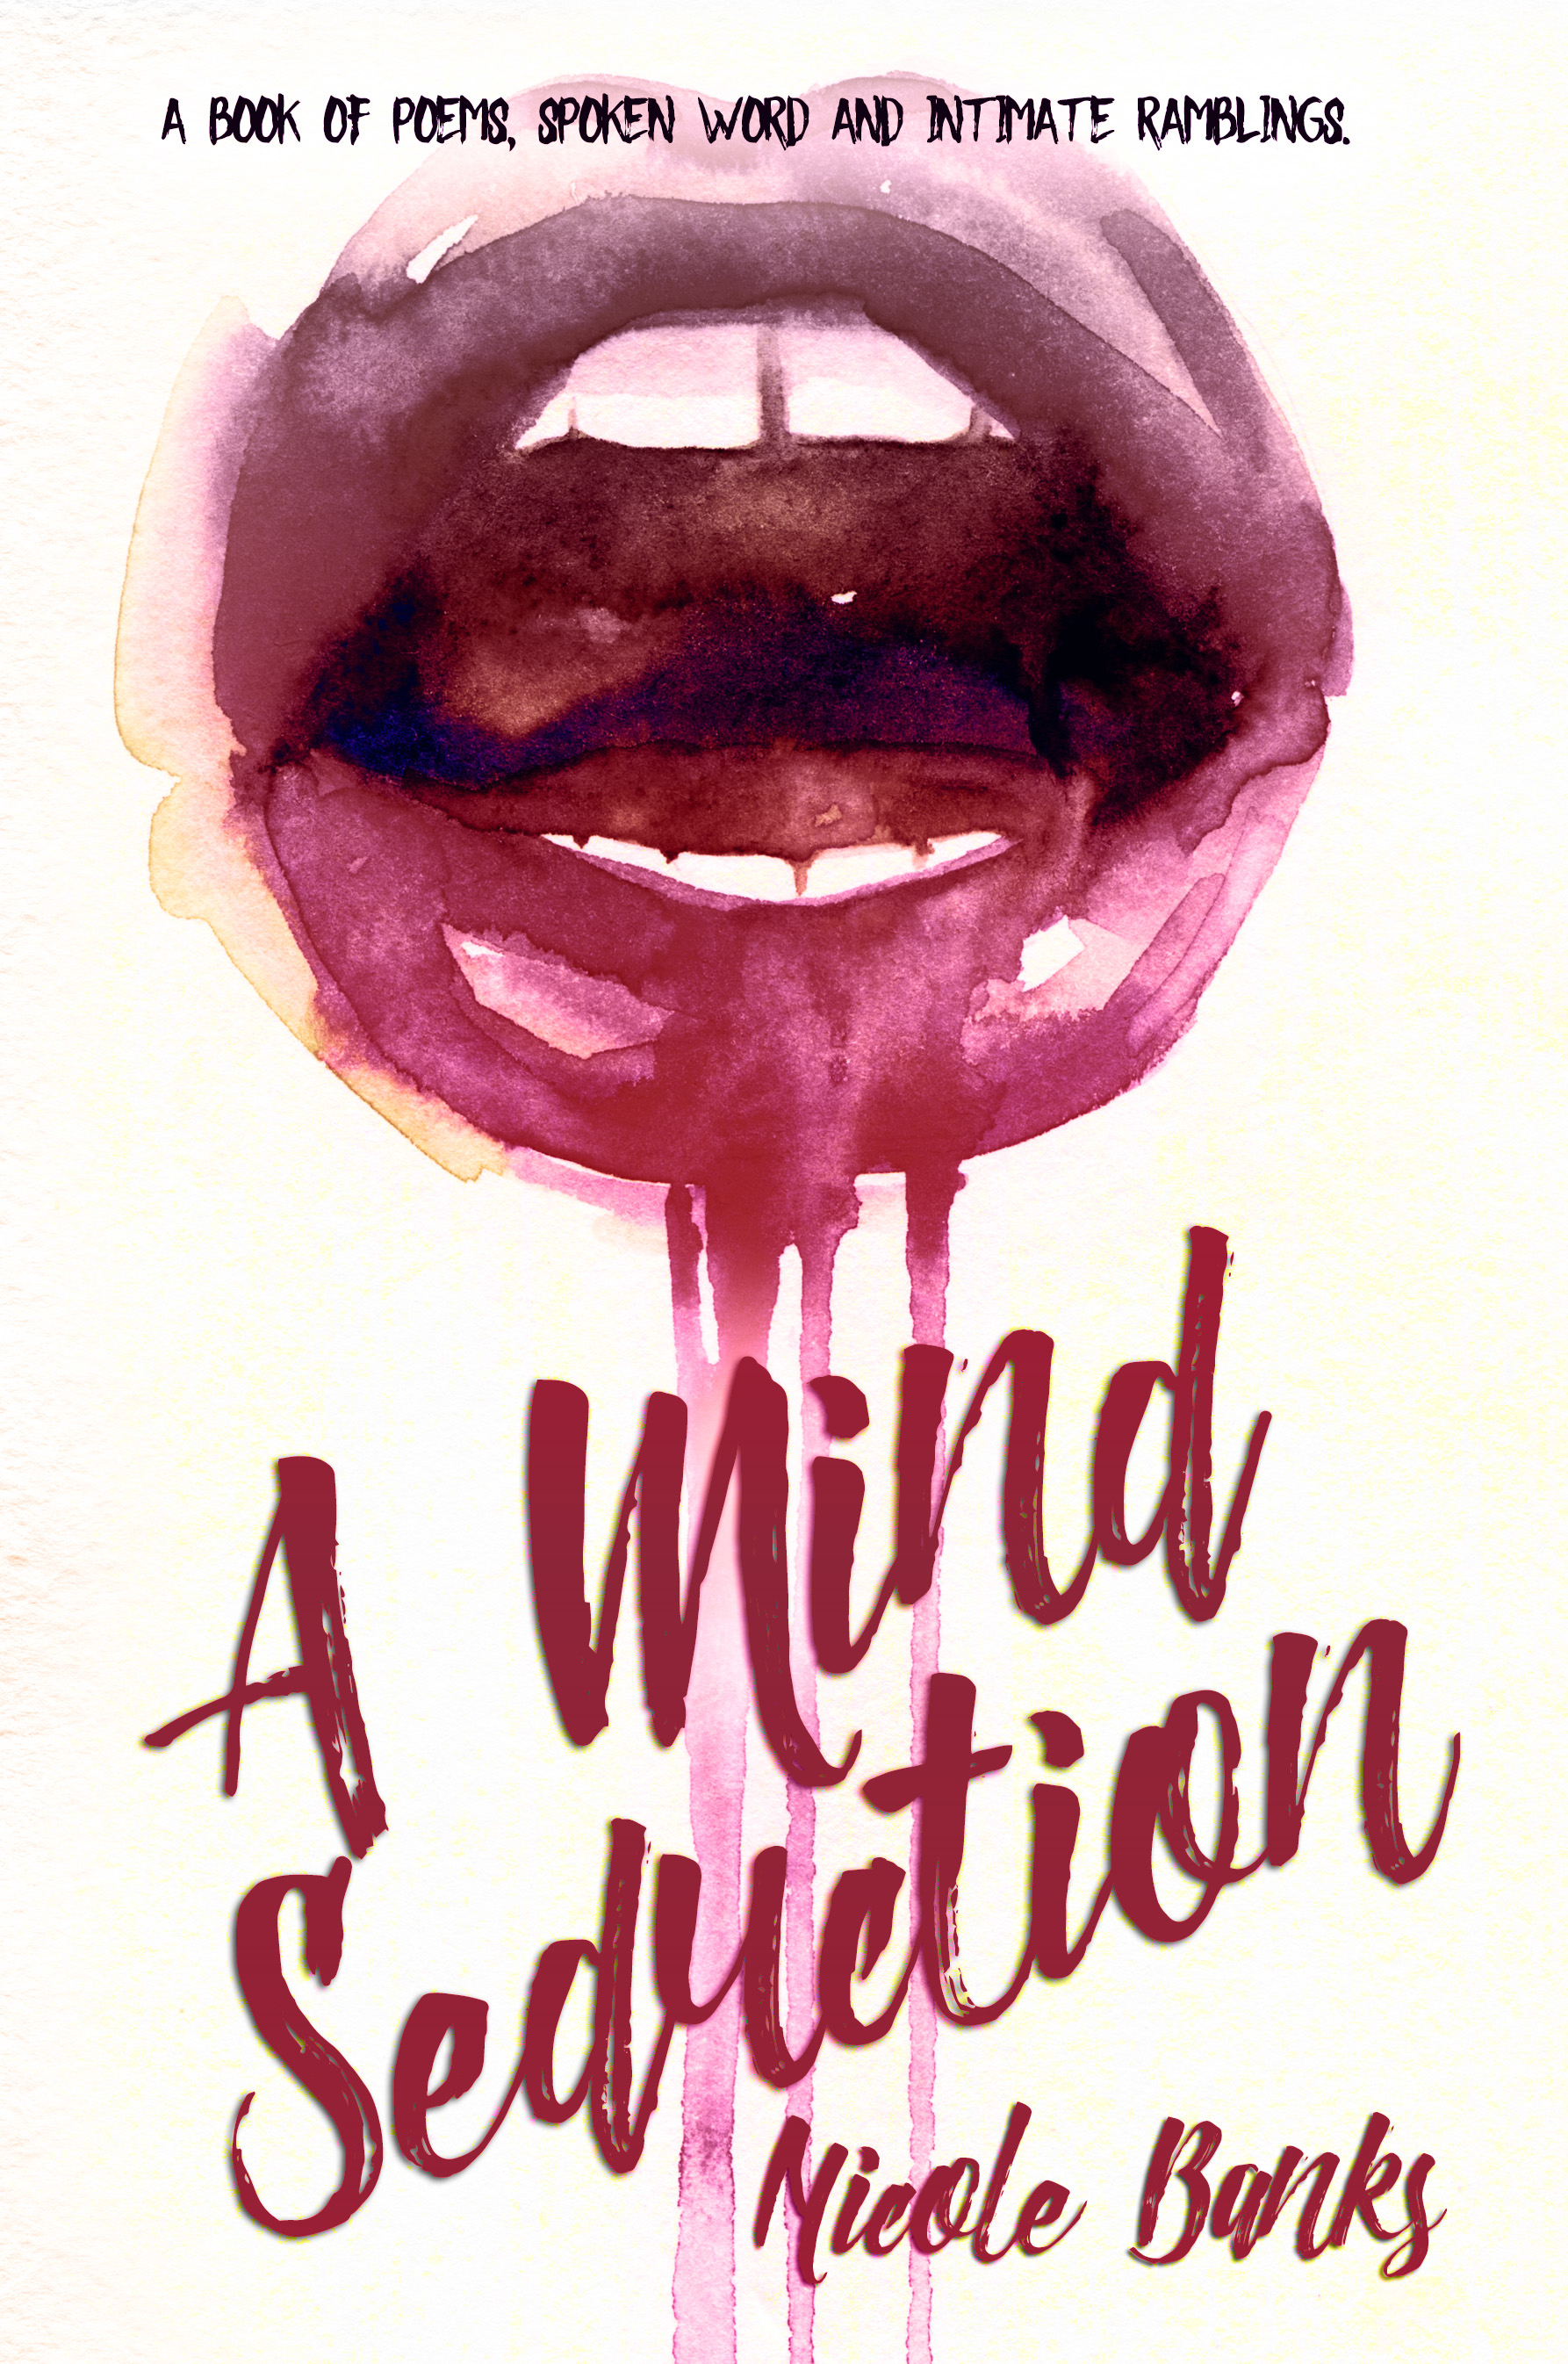 A Mind Seduction by Nicole Banks